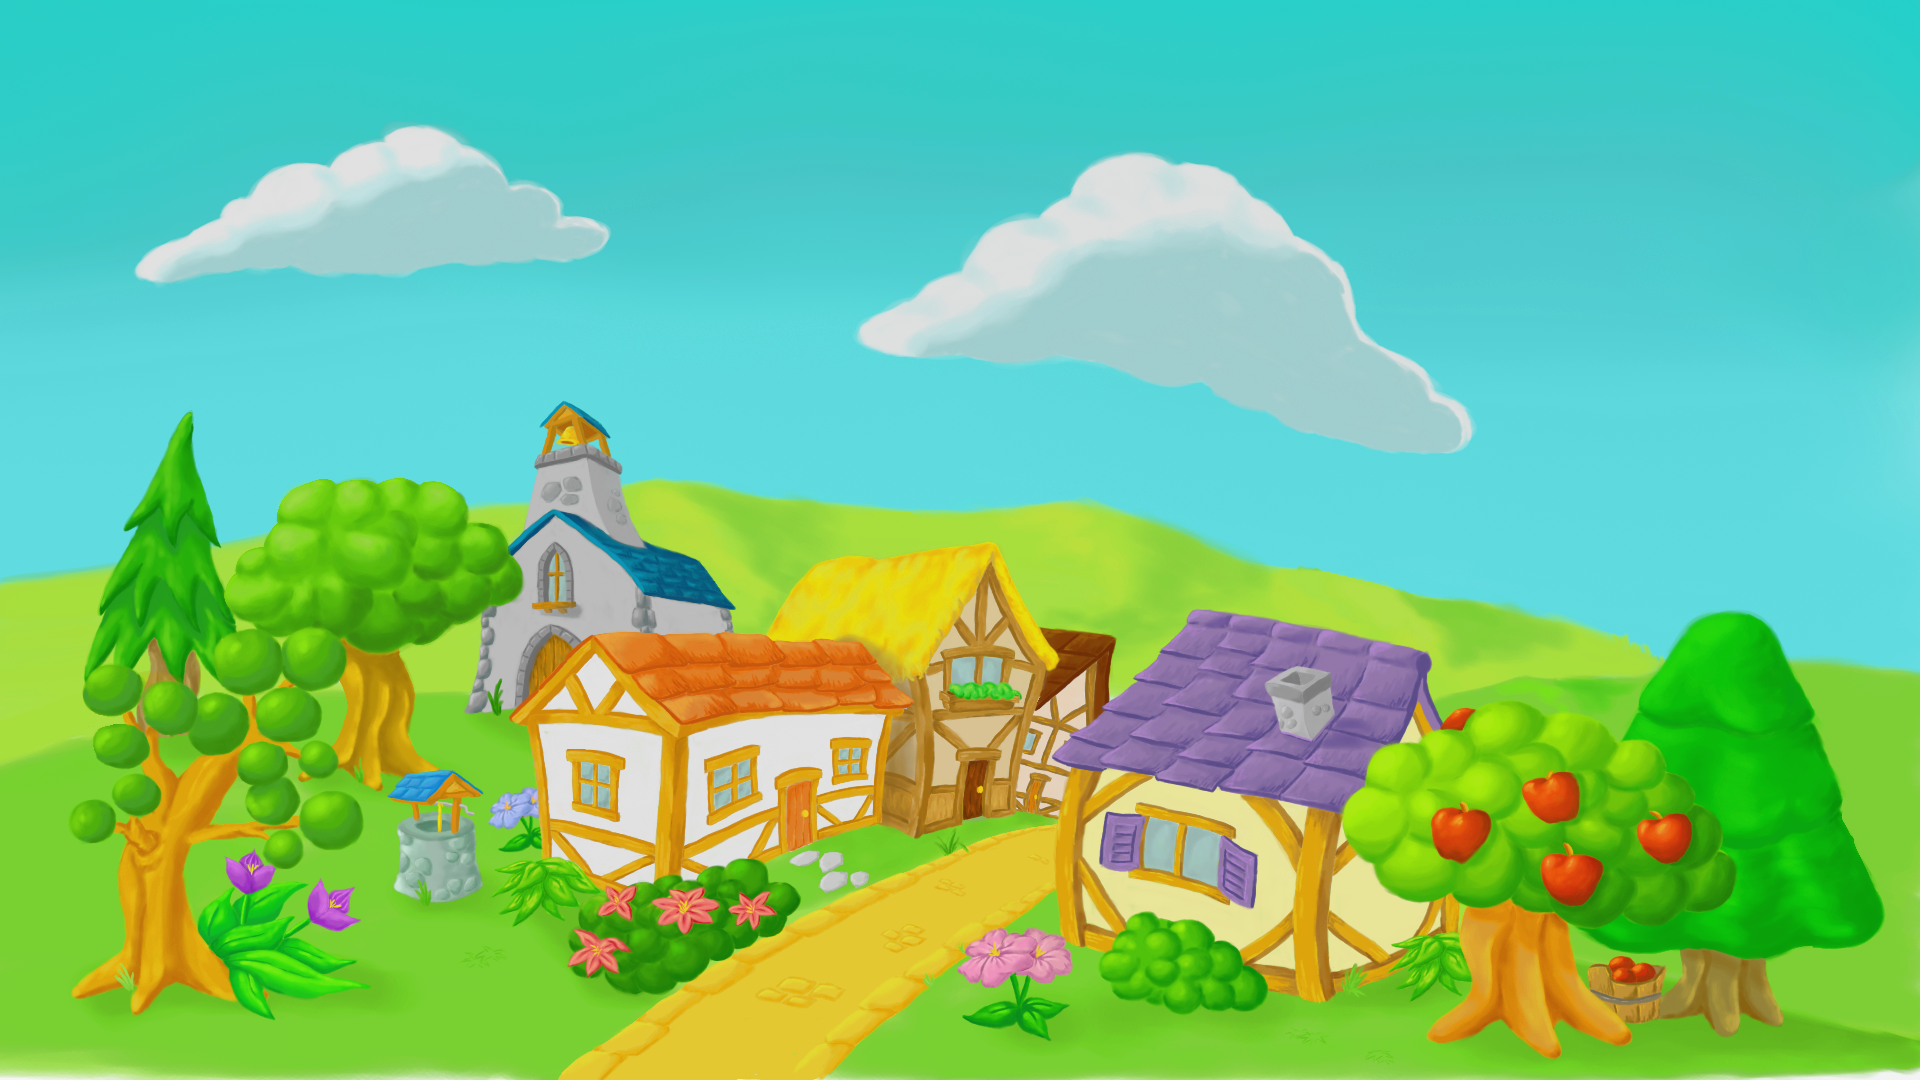 BackgroundJollyville01